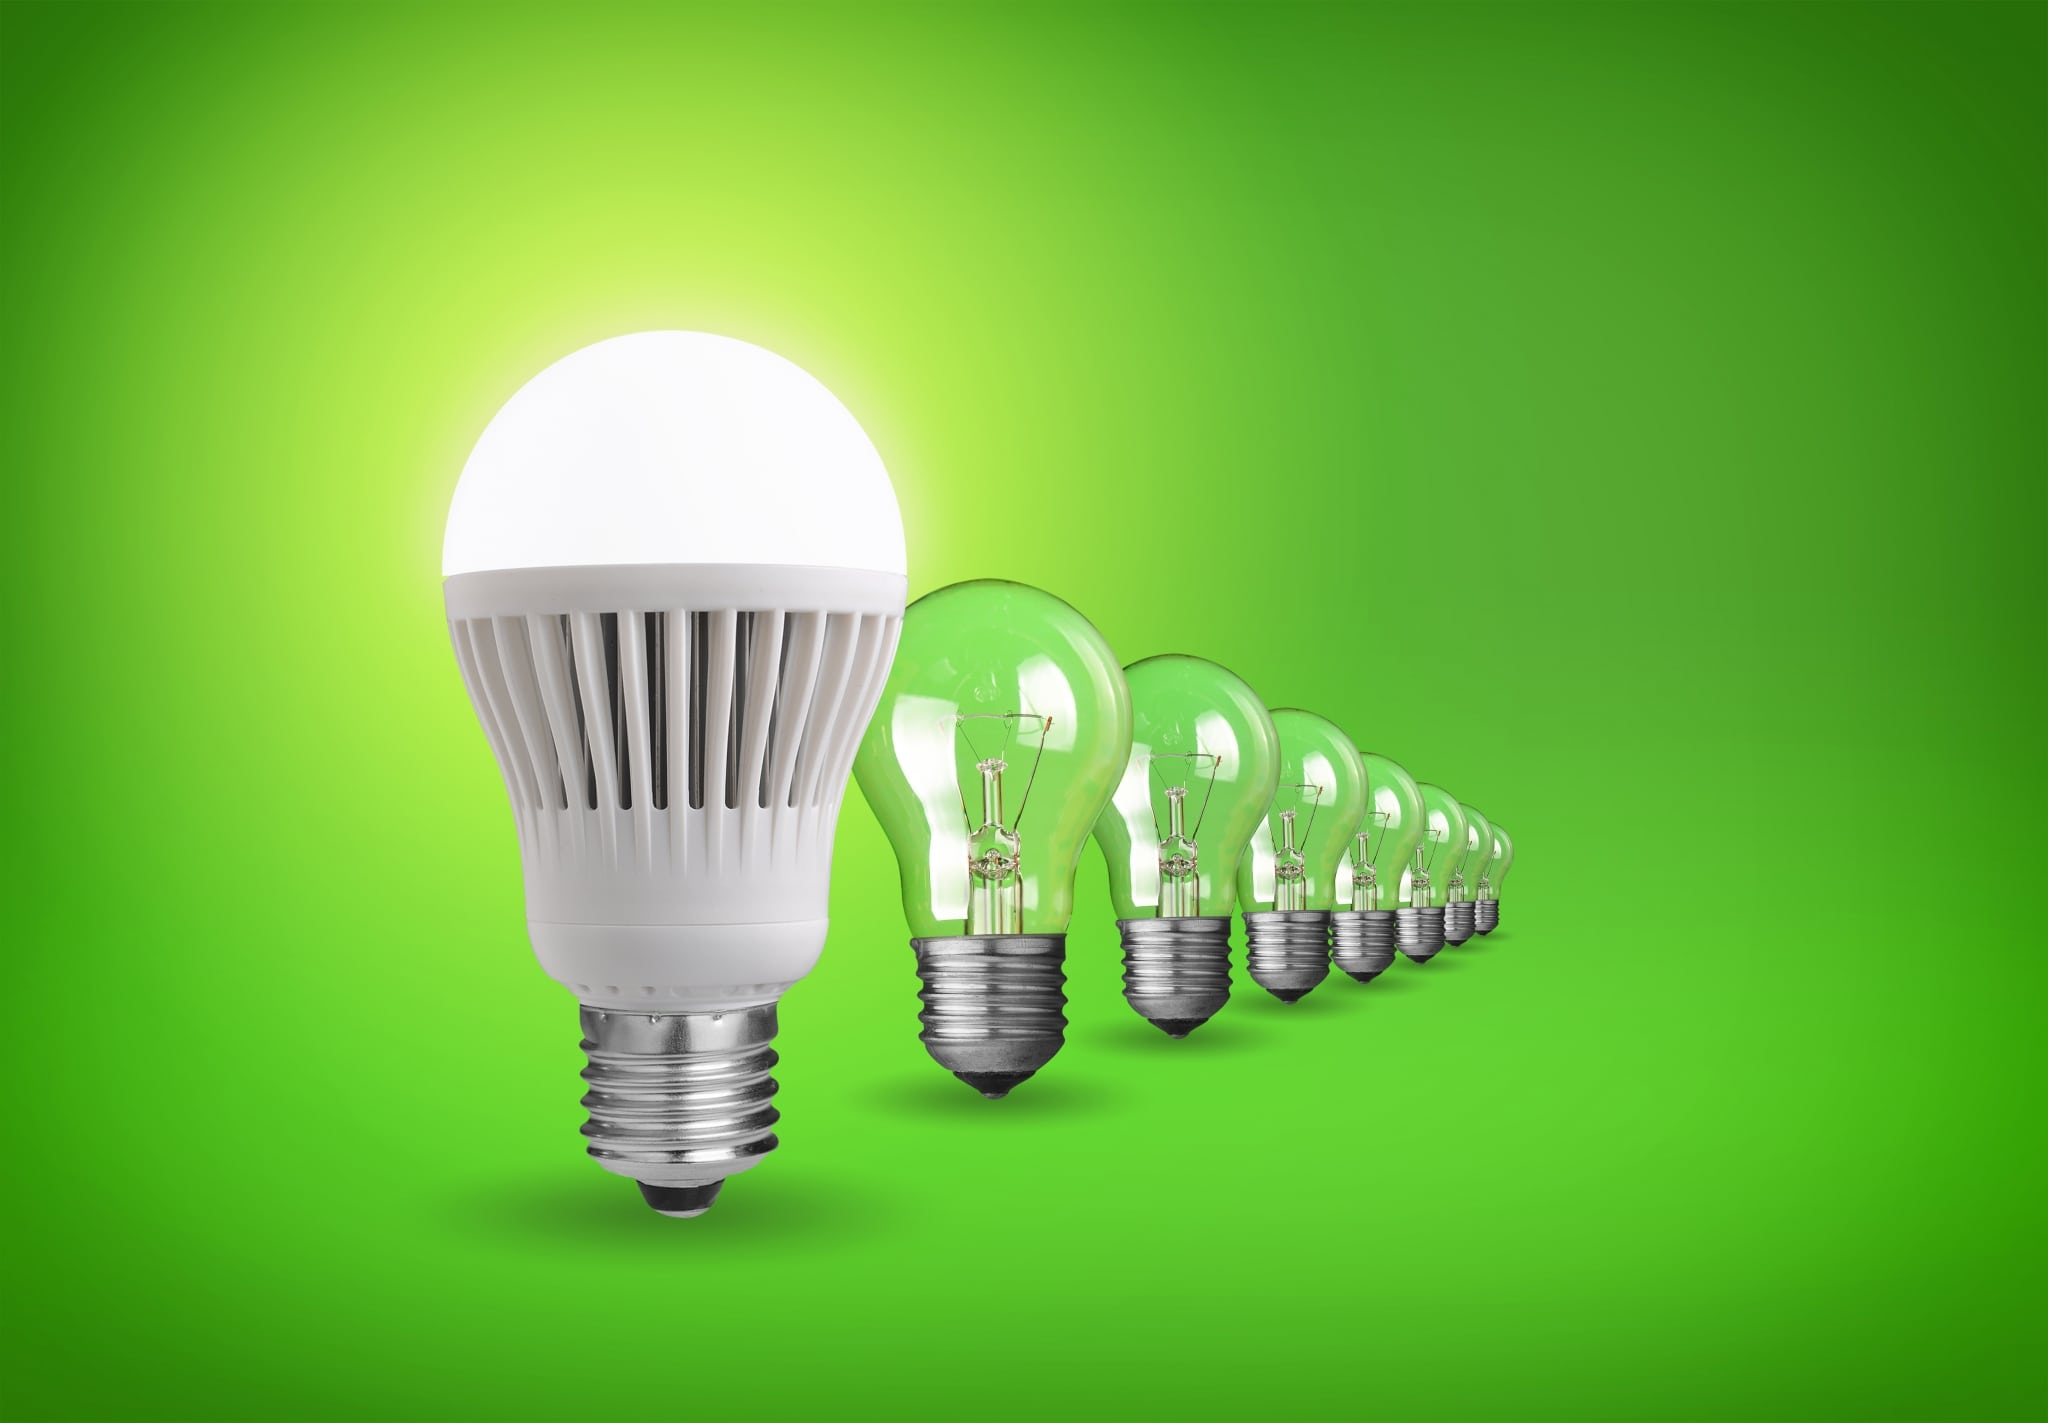 commercial led light bulbs